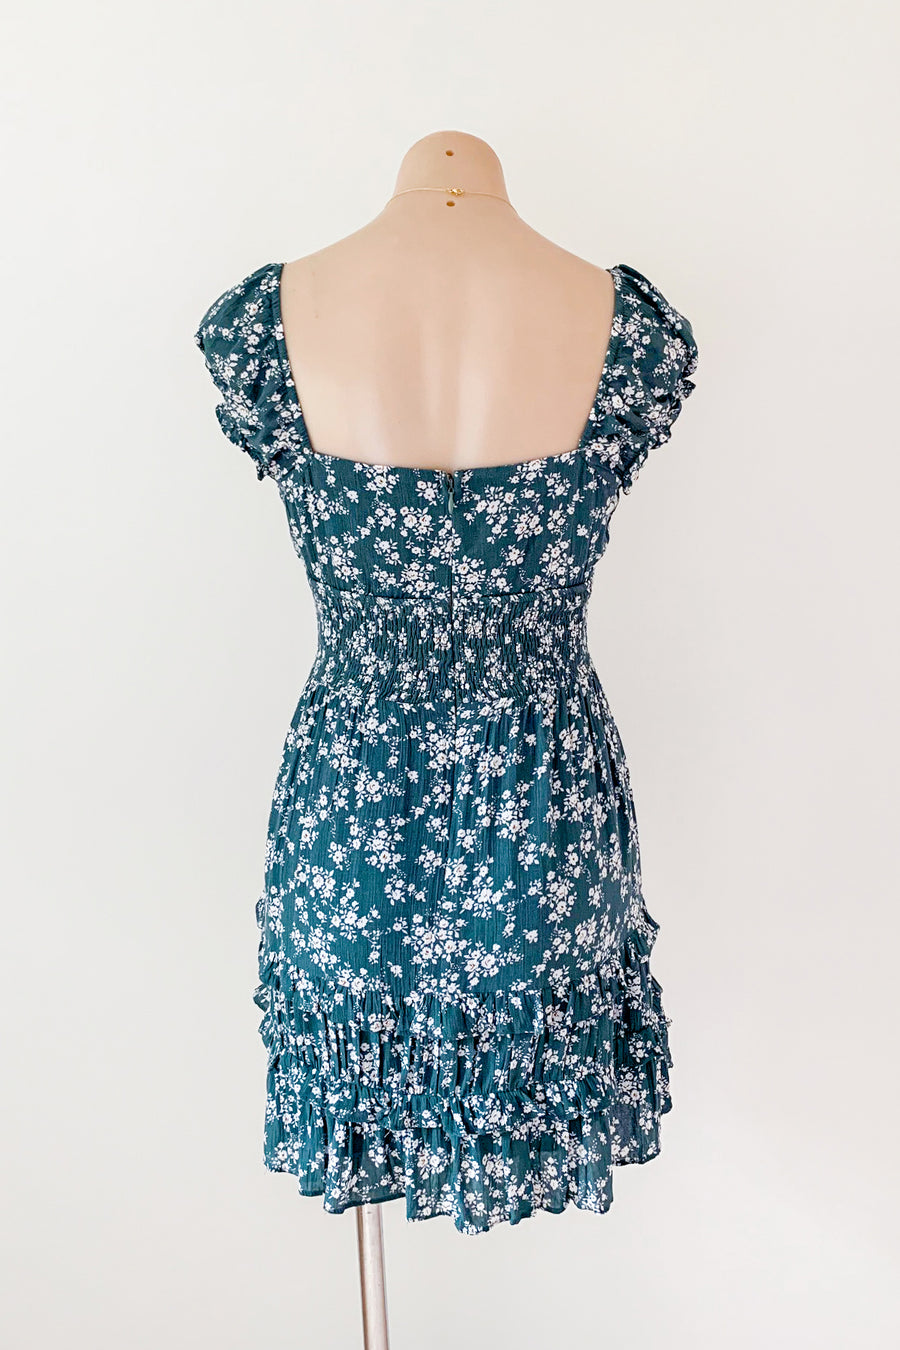 Alaia Dress for $79.00